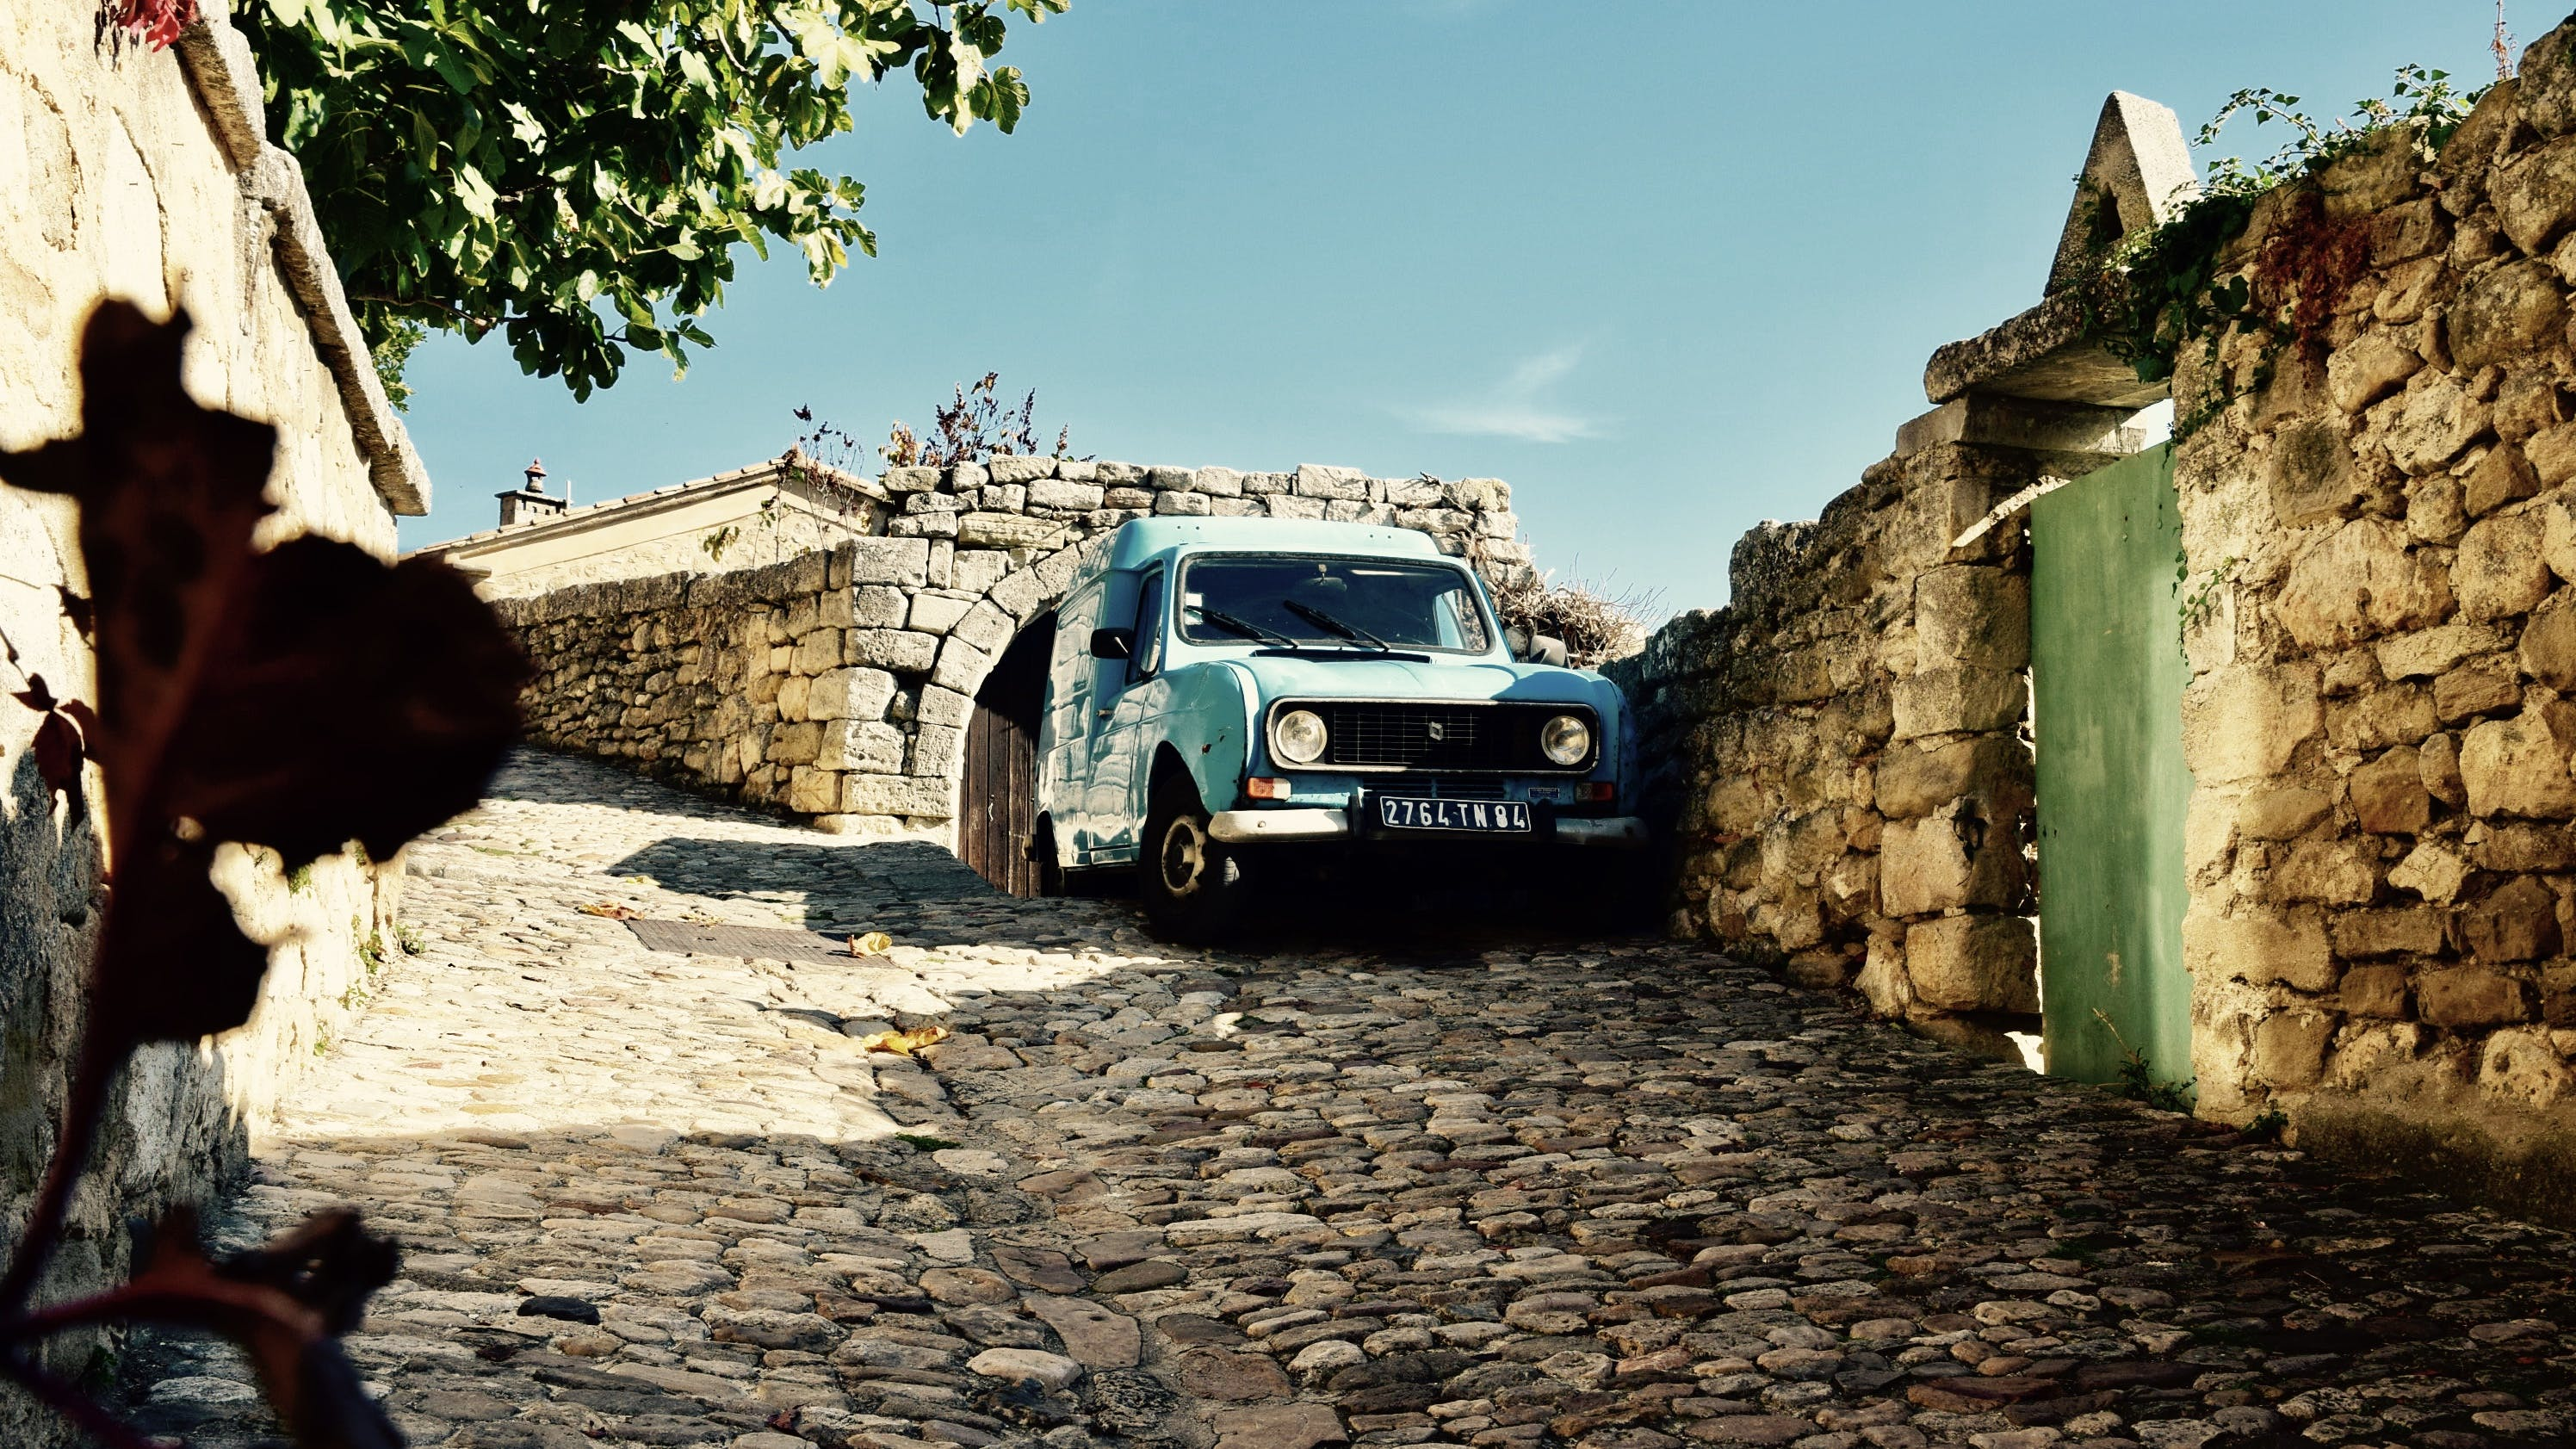 Free stock photo of car, cobblestones, france, Lacoste